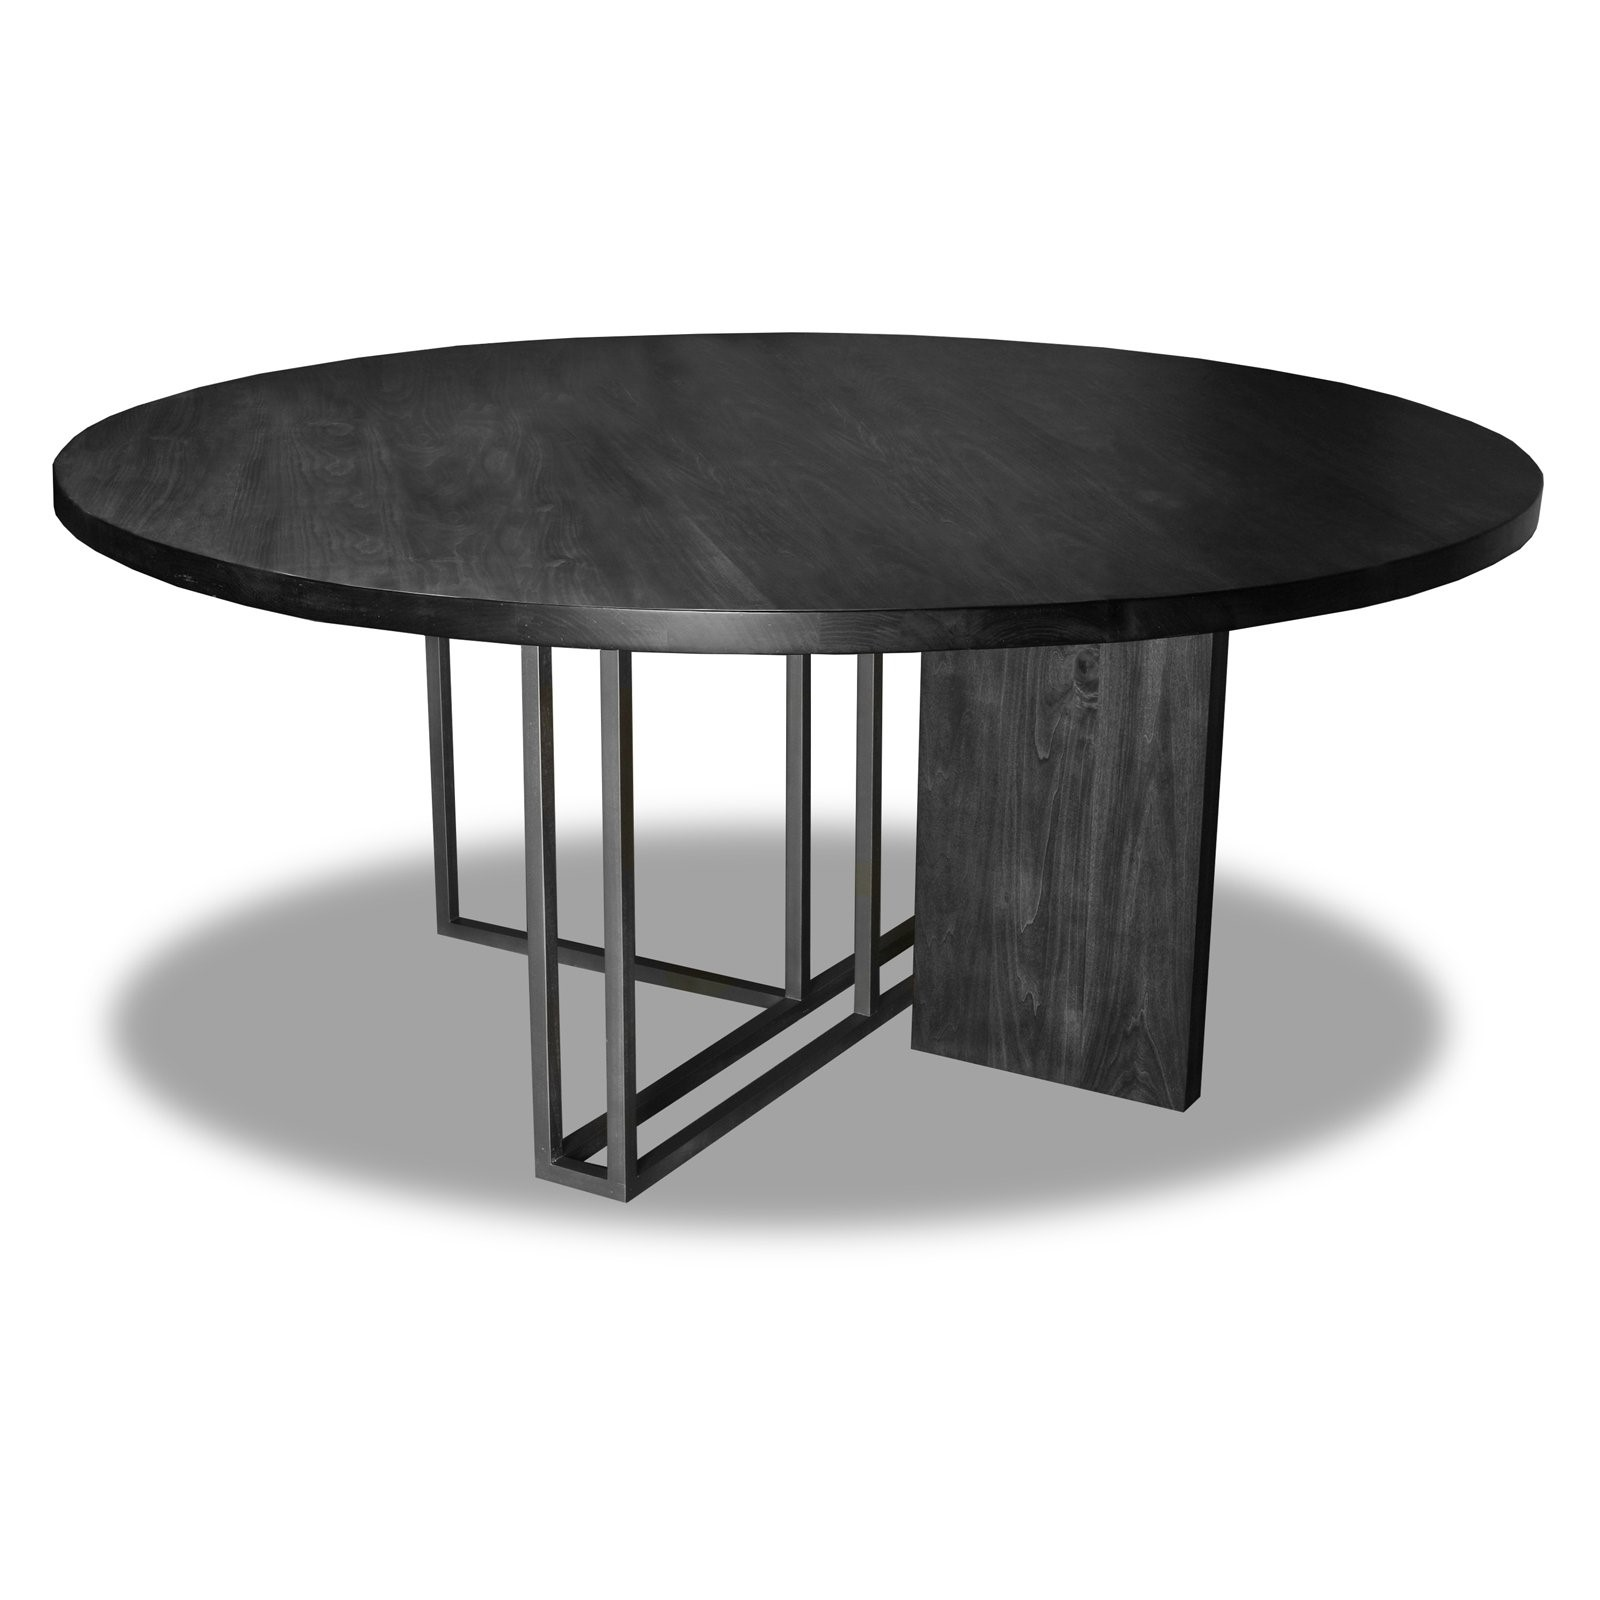 "South Cone Home Highmount Round Dining Table, 48"" Top, Grey"